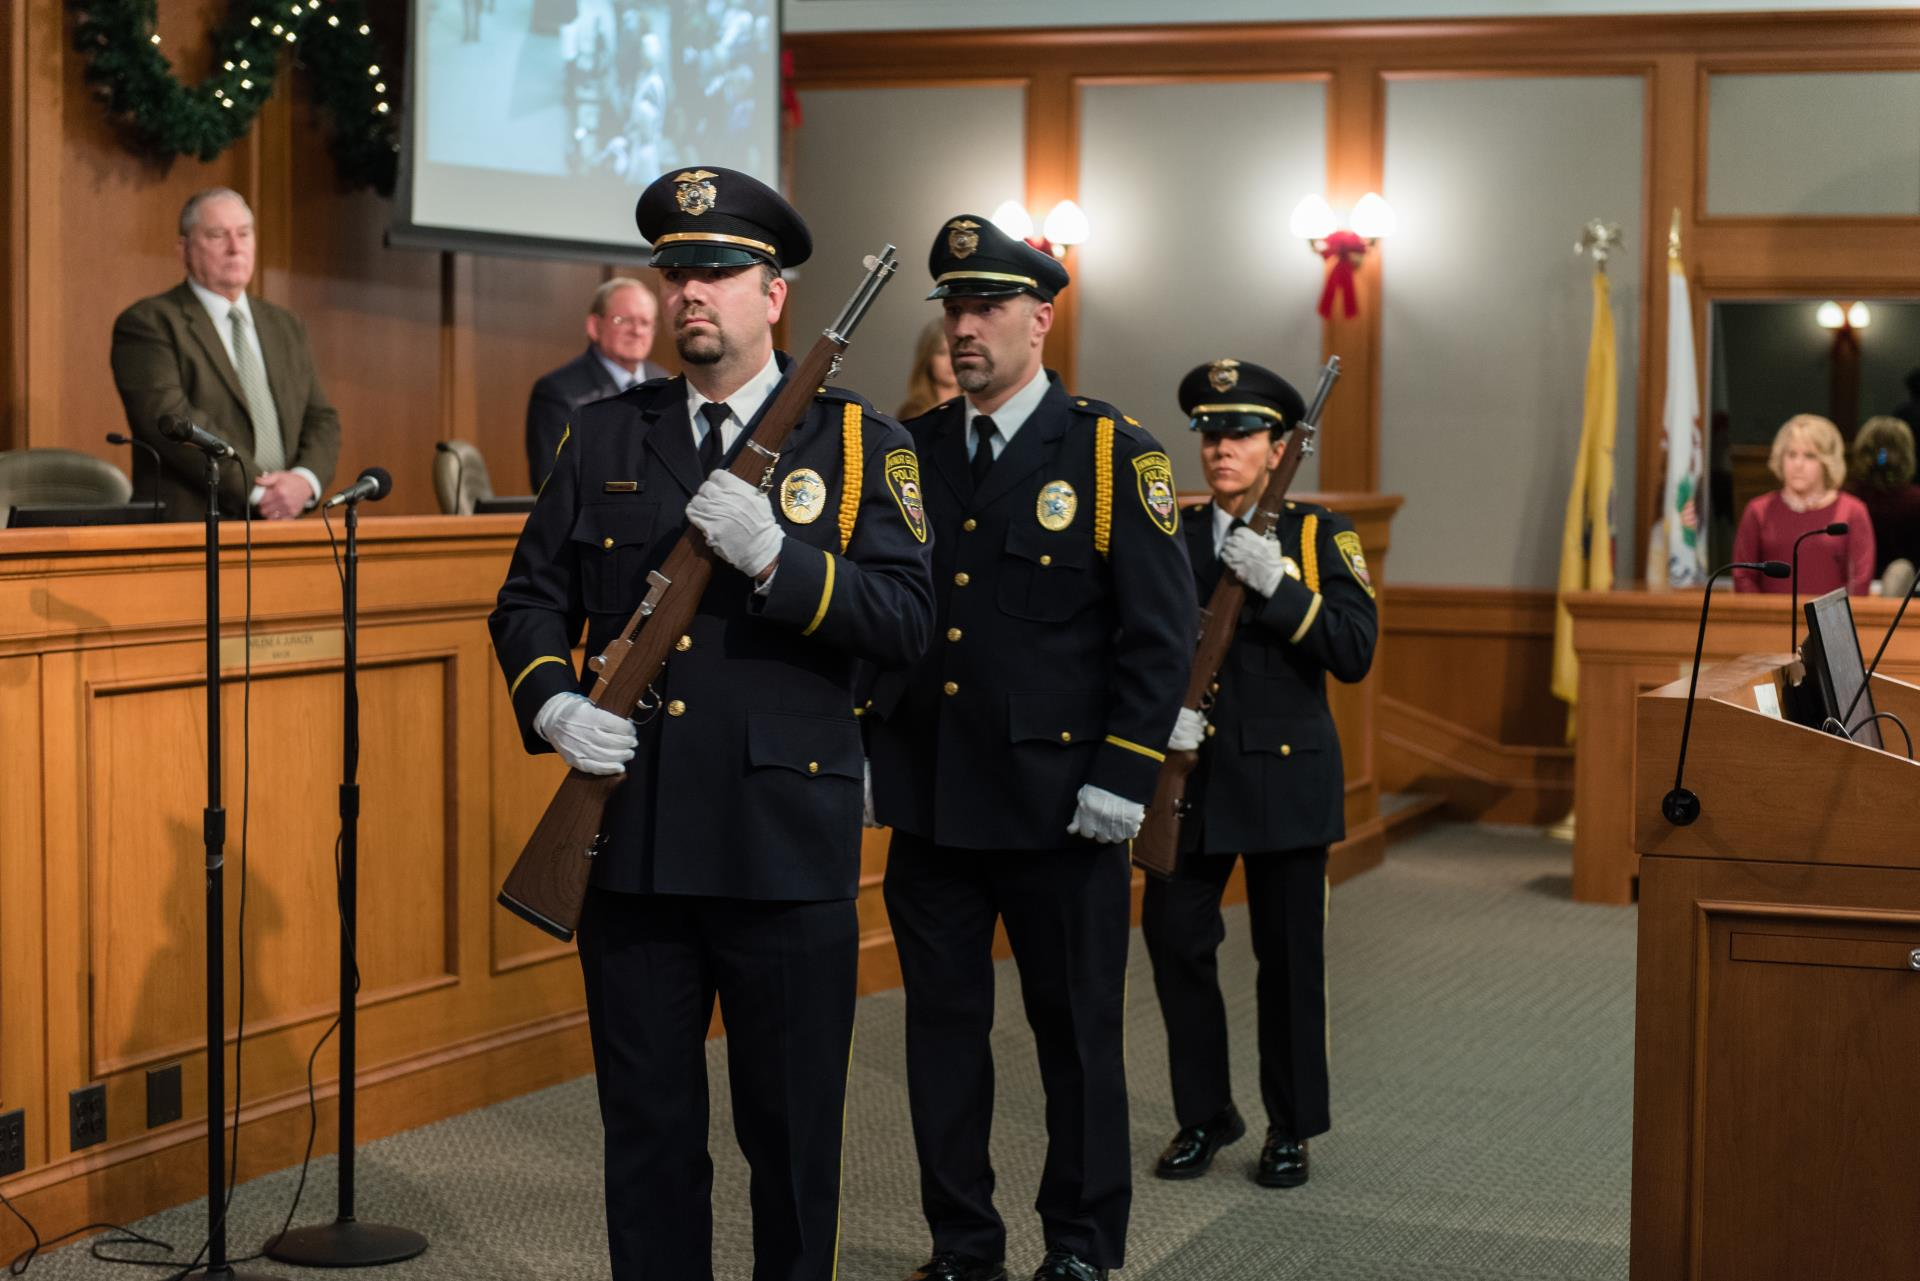 Chief Koziol Swearing-In Ceremony Final-4199